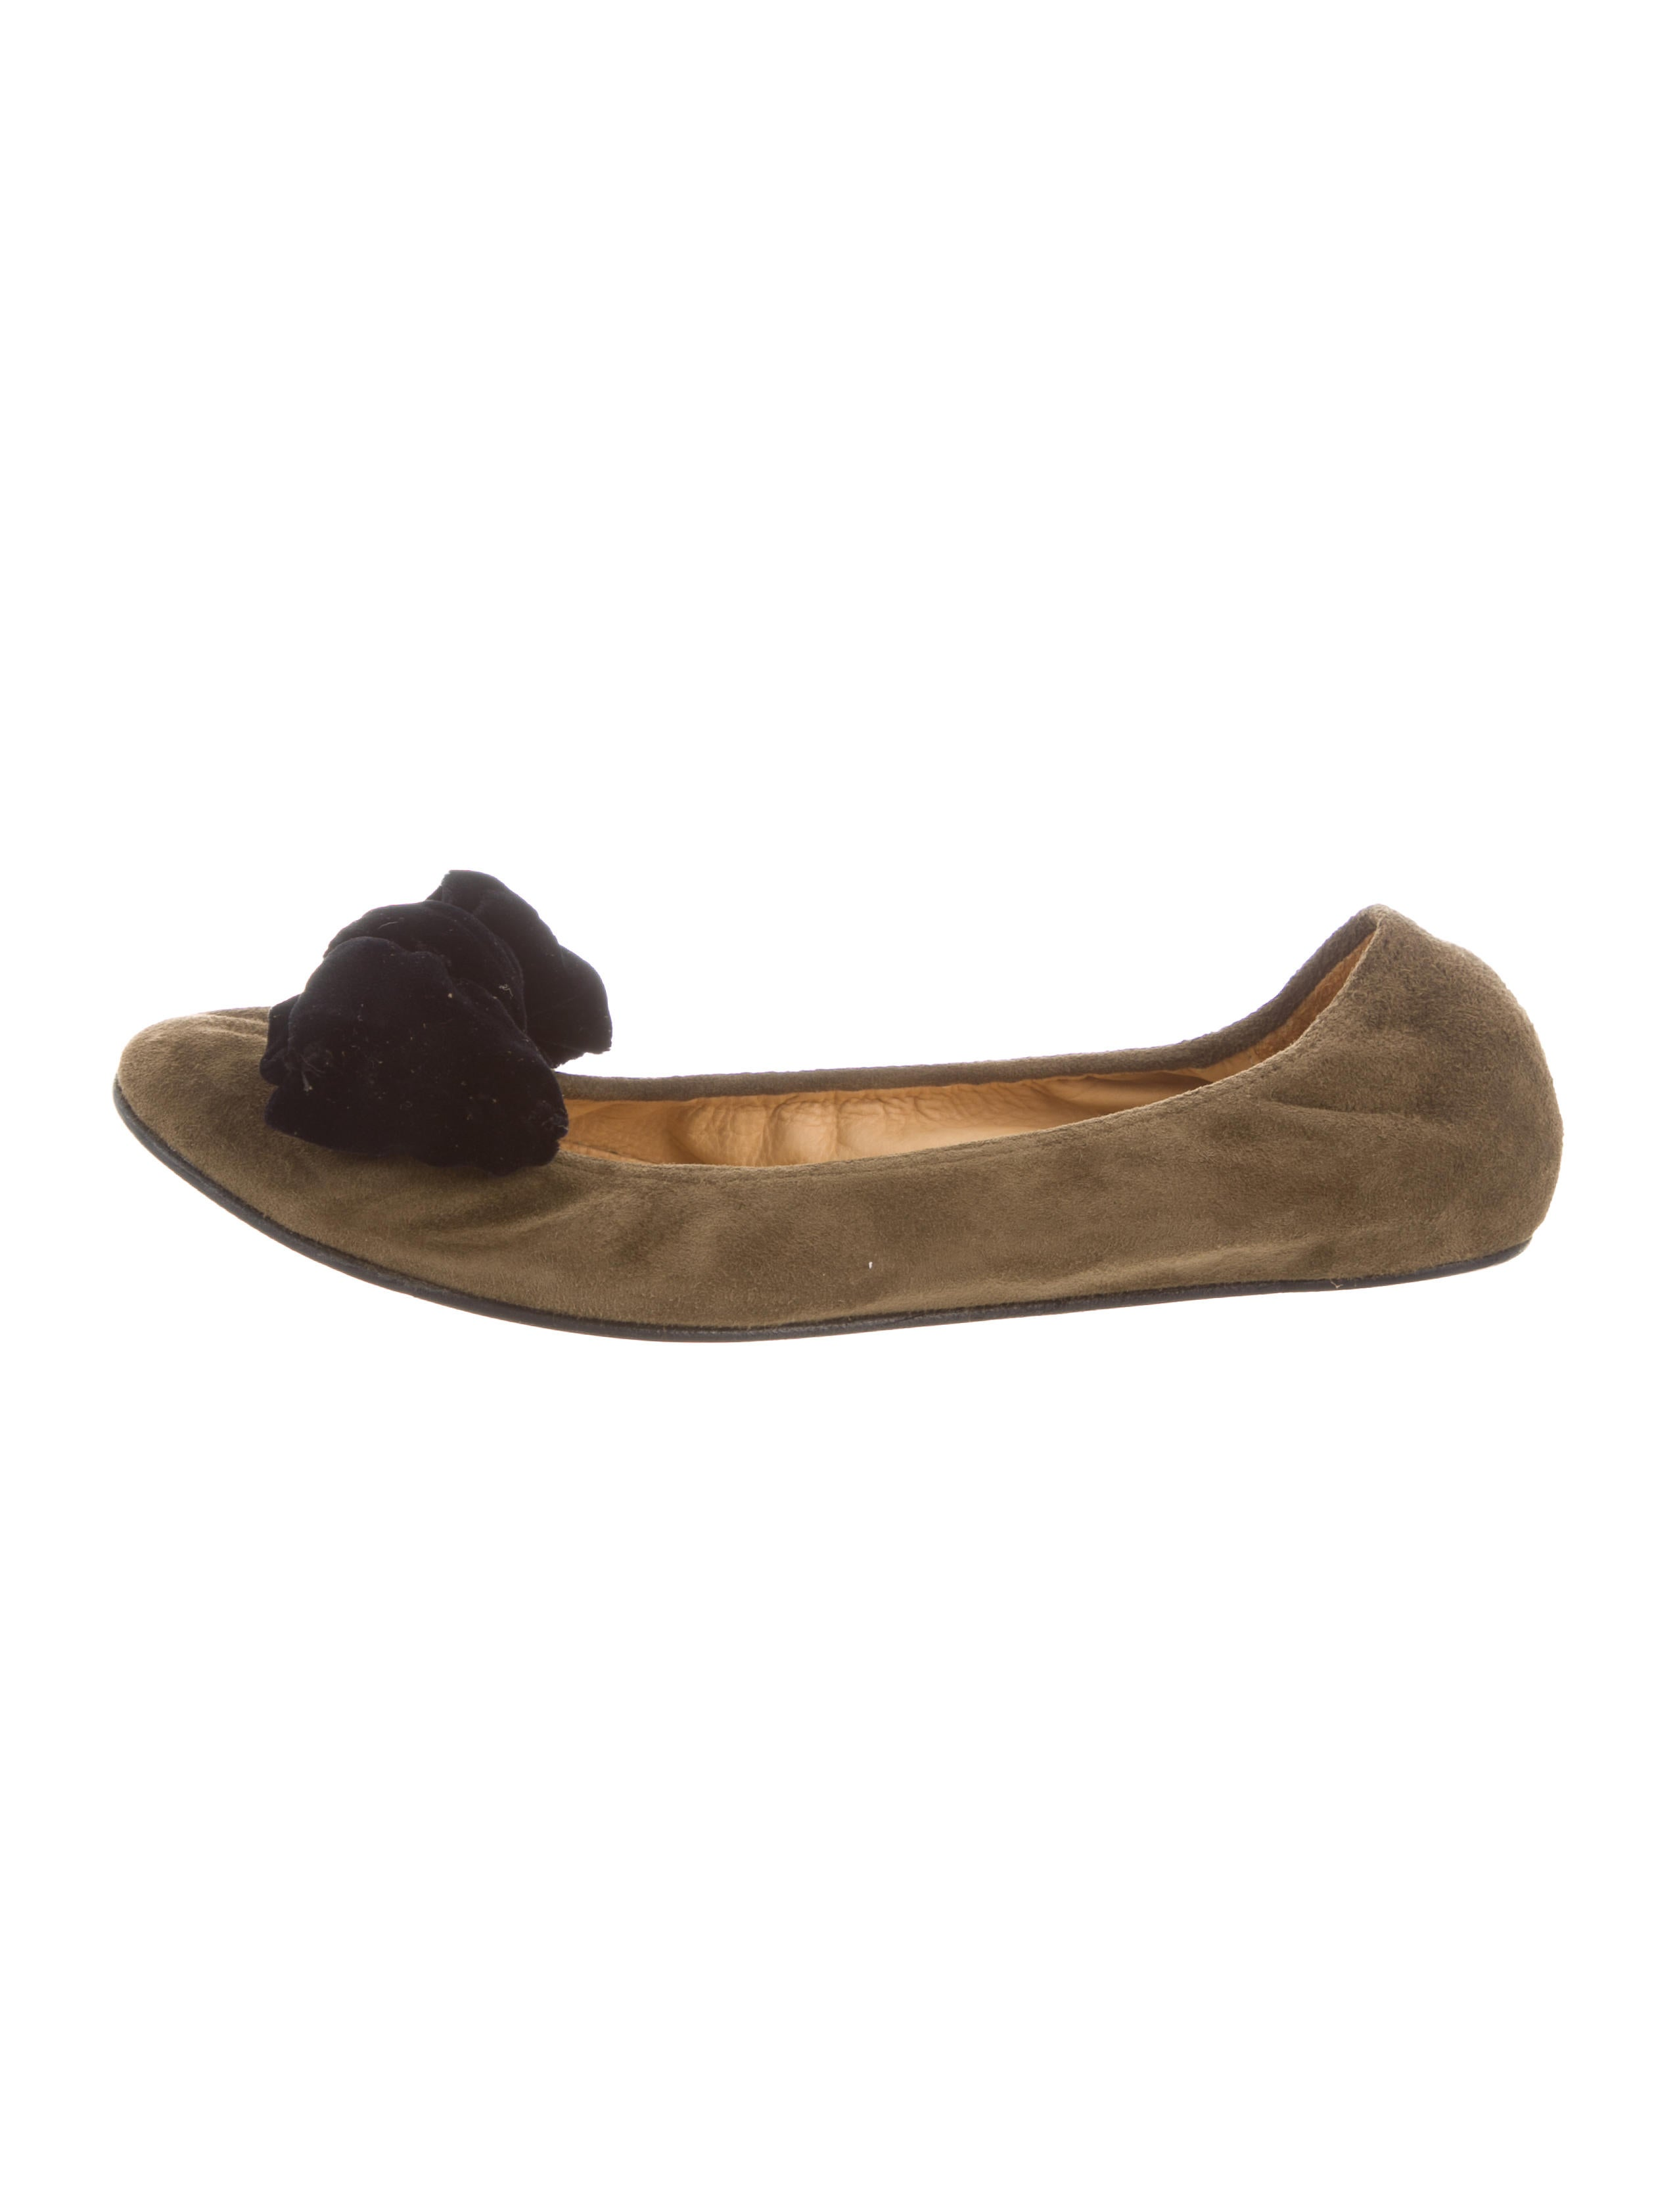 outlet countdown package Lanvin Bow-accented Ballet Flats hot sale hot sale cheap price limited edition for sale outlet store locations 3tqUkMRf